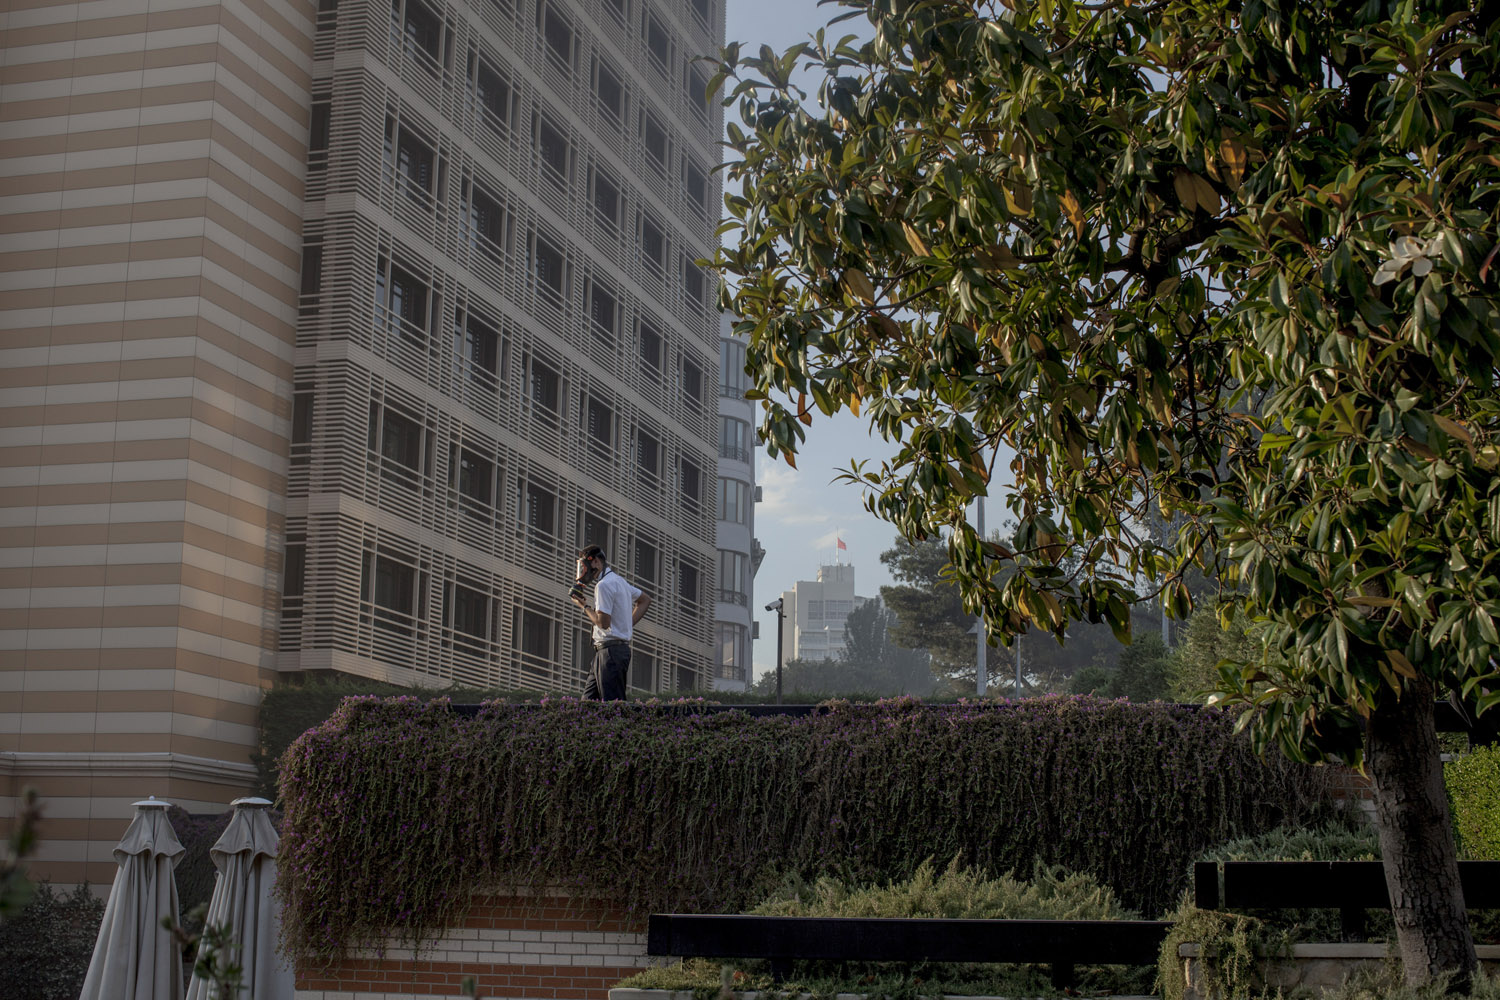 A hotel security guard watches as riot police and anti-government protesters clash below him.